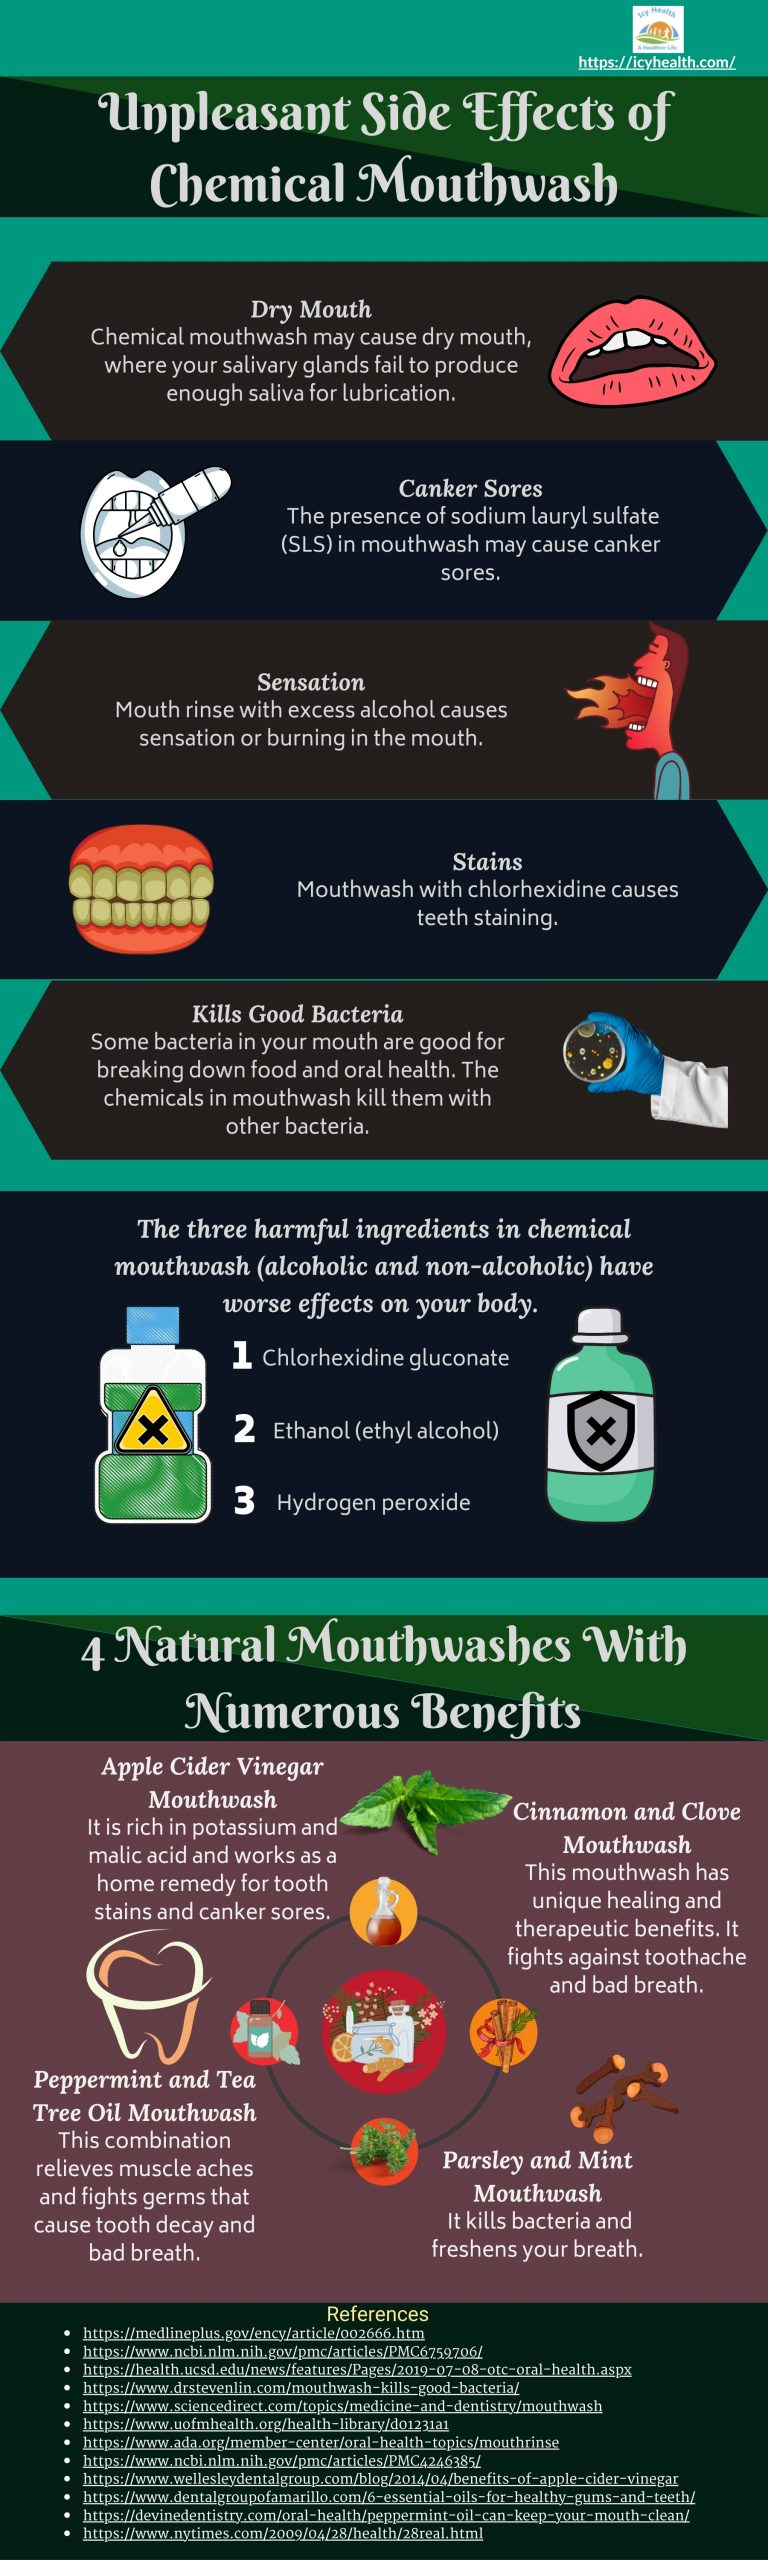 Unpleasant Side Effects of Chemical Mouthwash